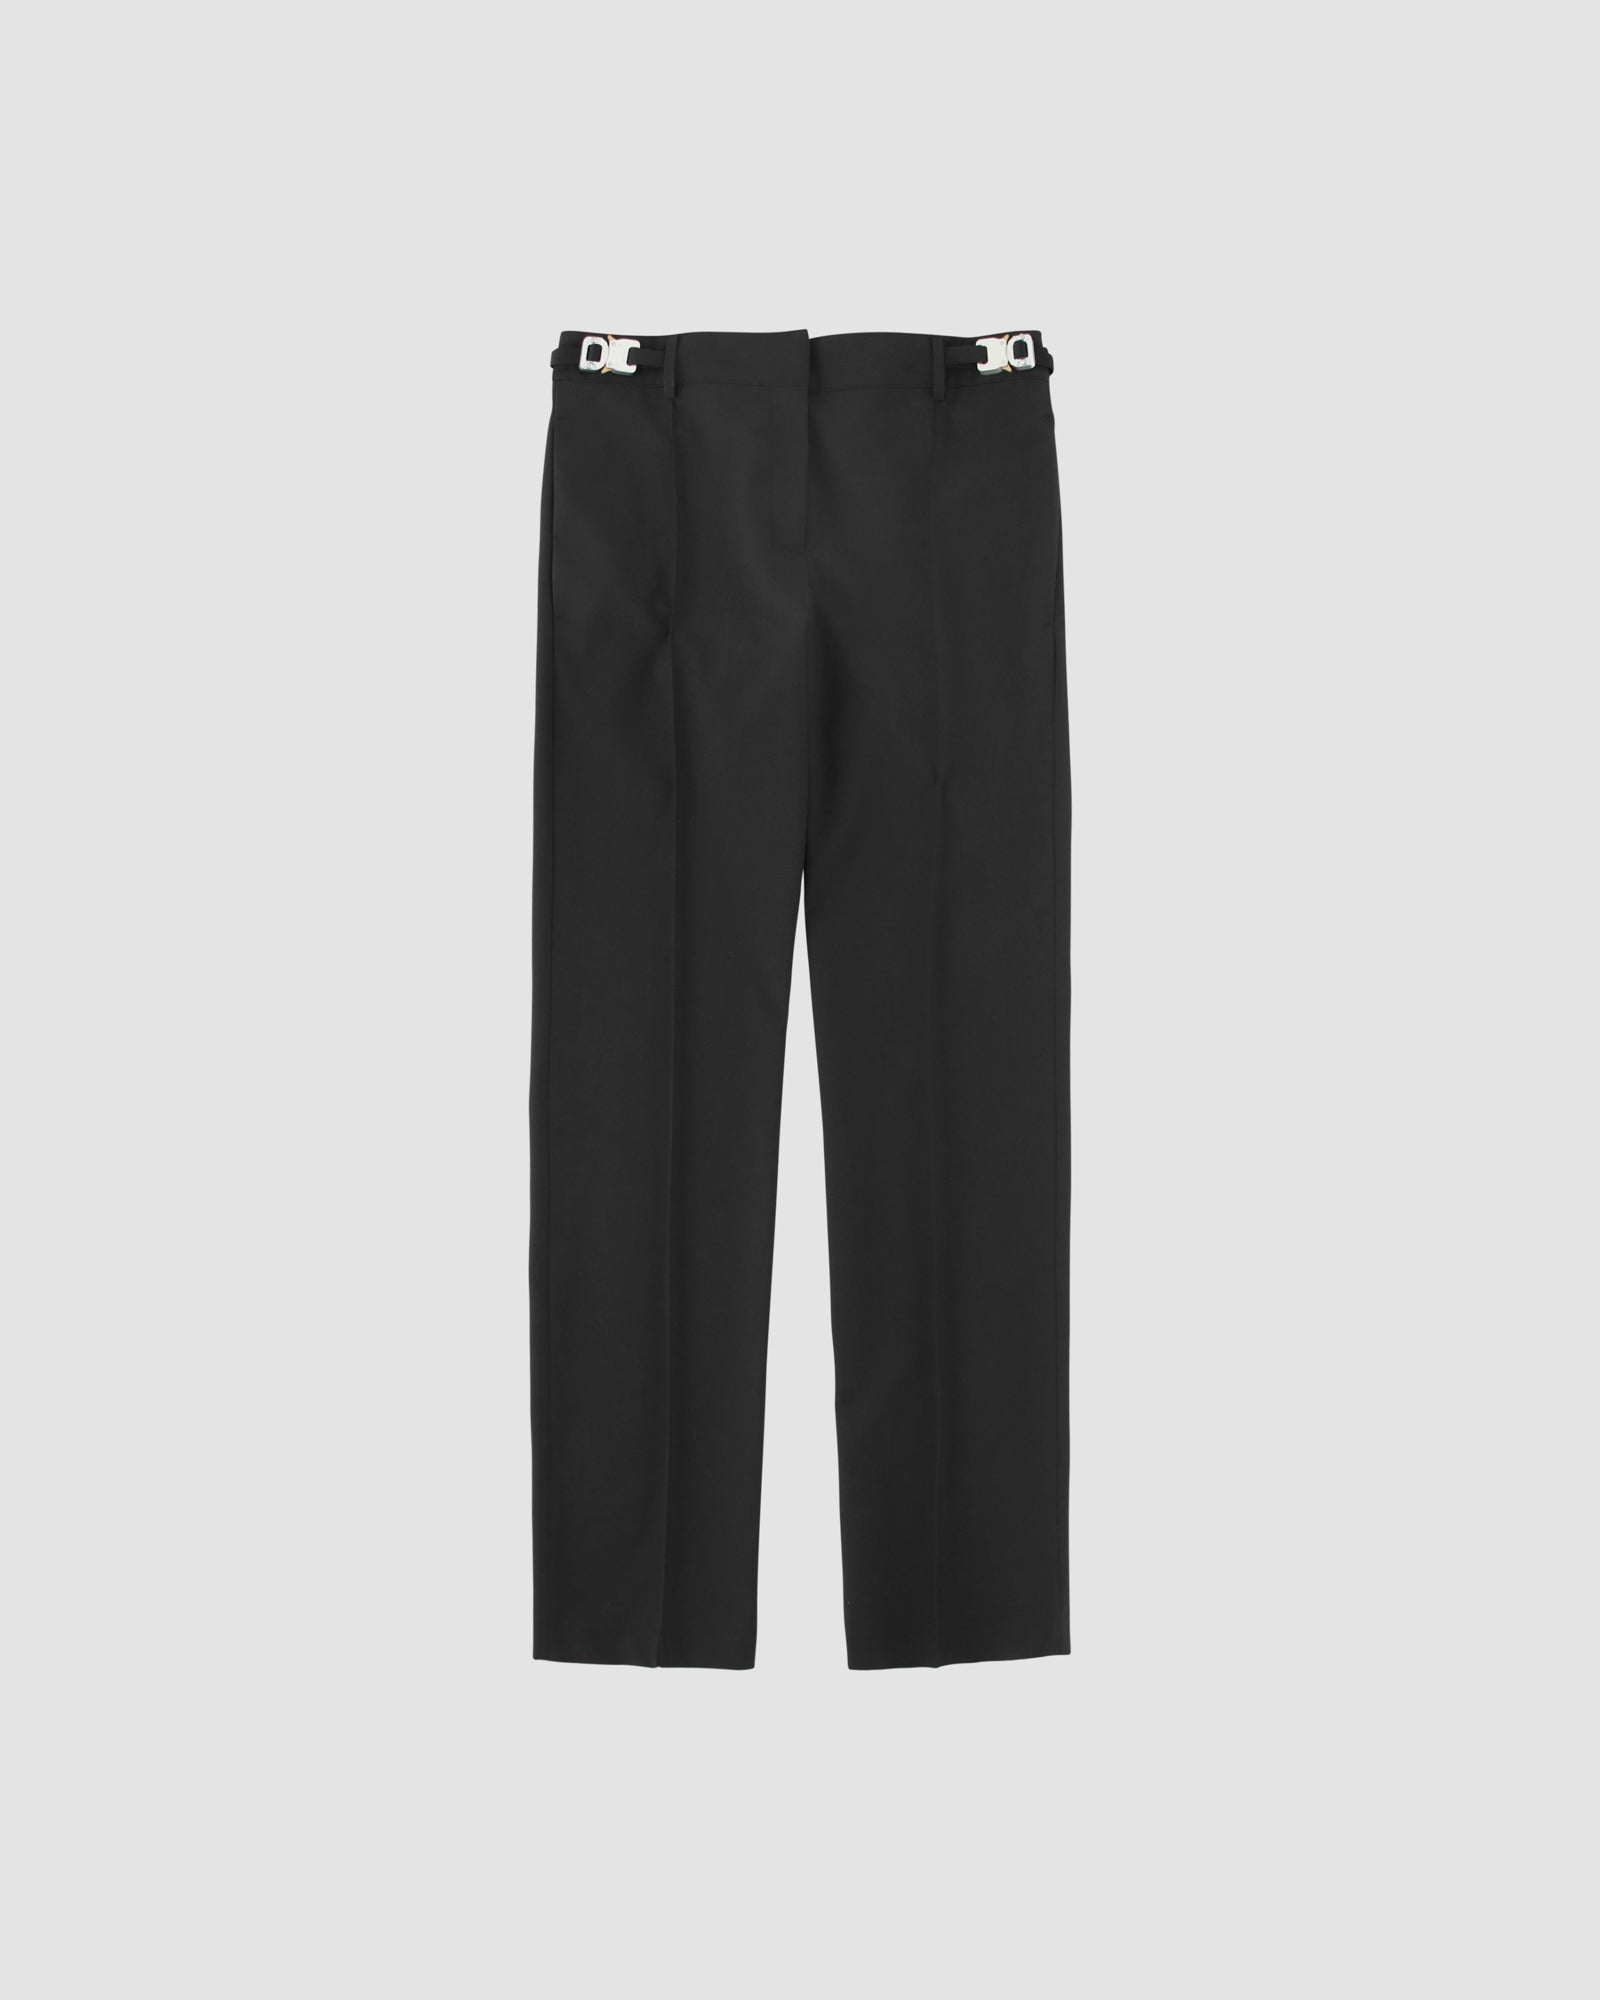 DOUBLE BUCKLE TAILORING PANT